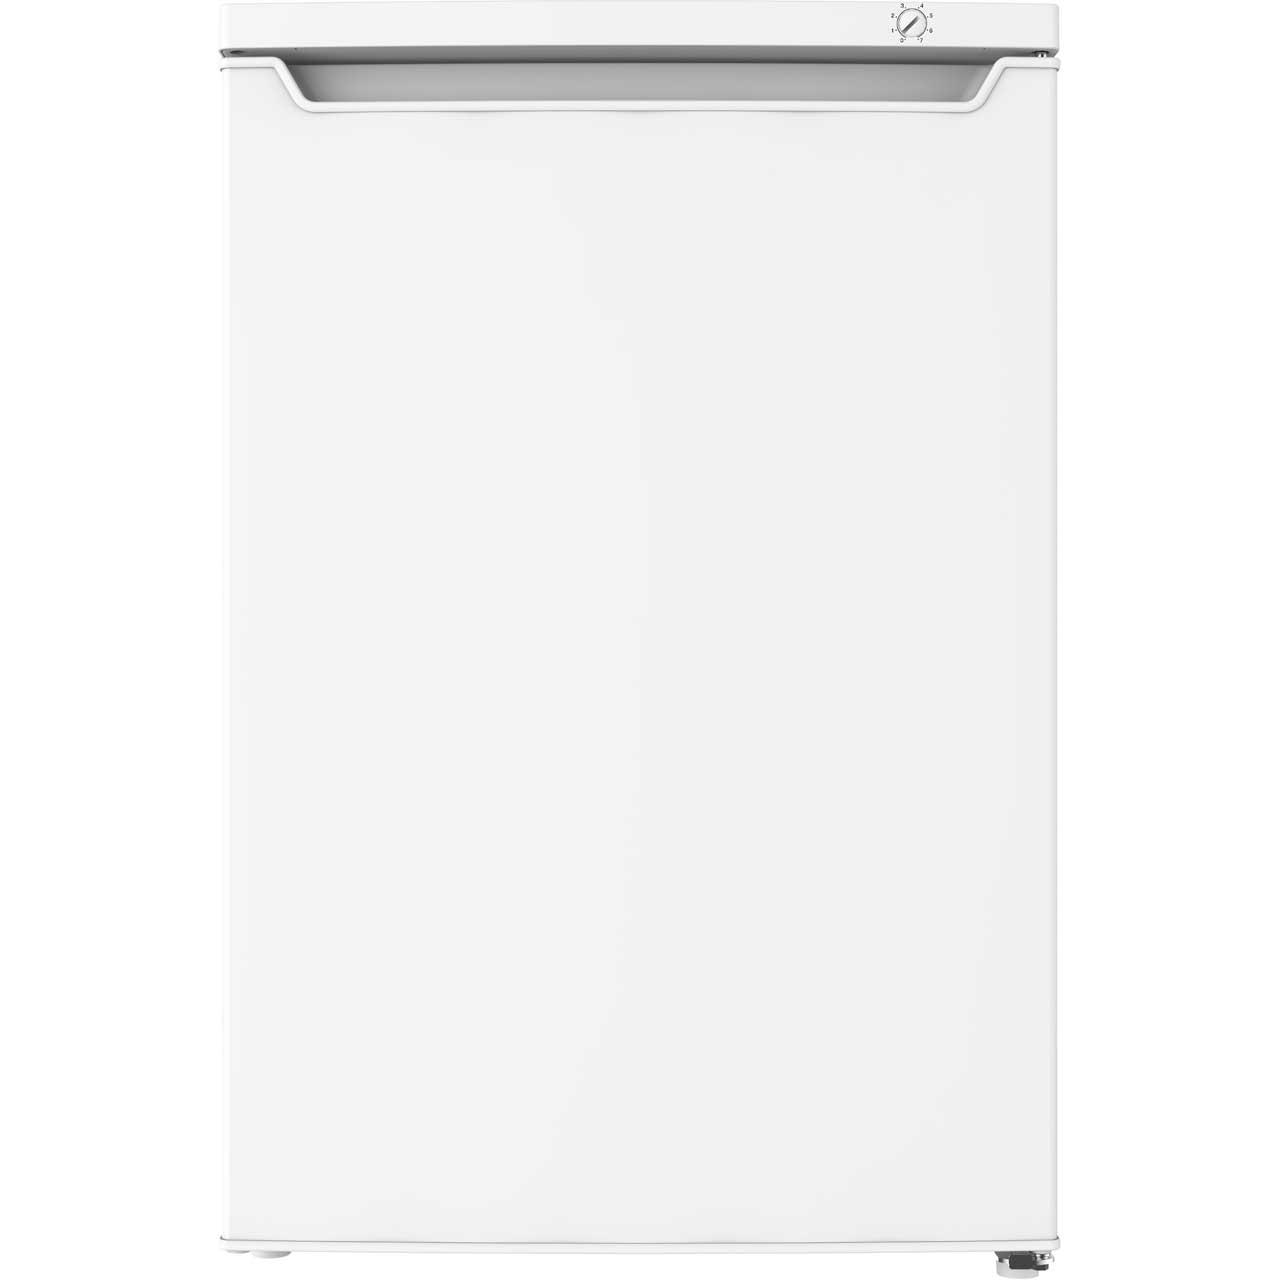 Fridgemaster MUZ5582A2 Free Standing Freezer in White